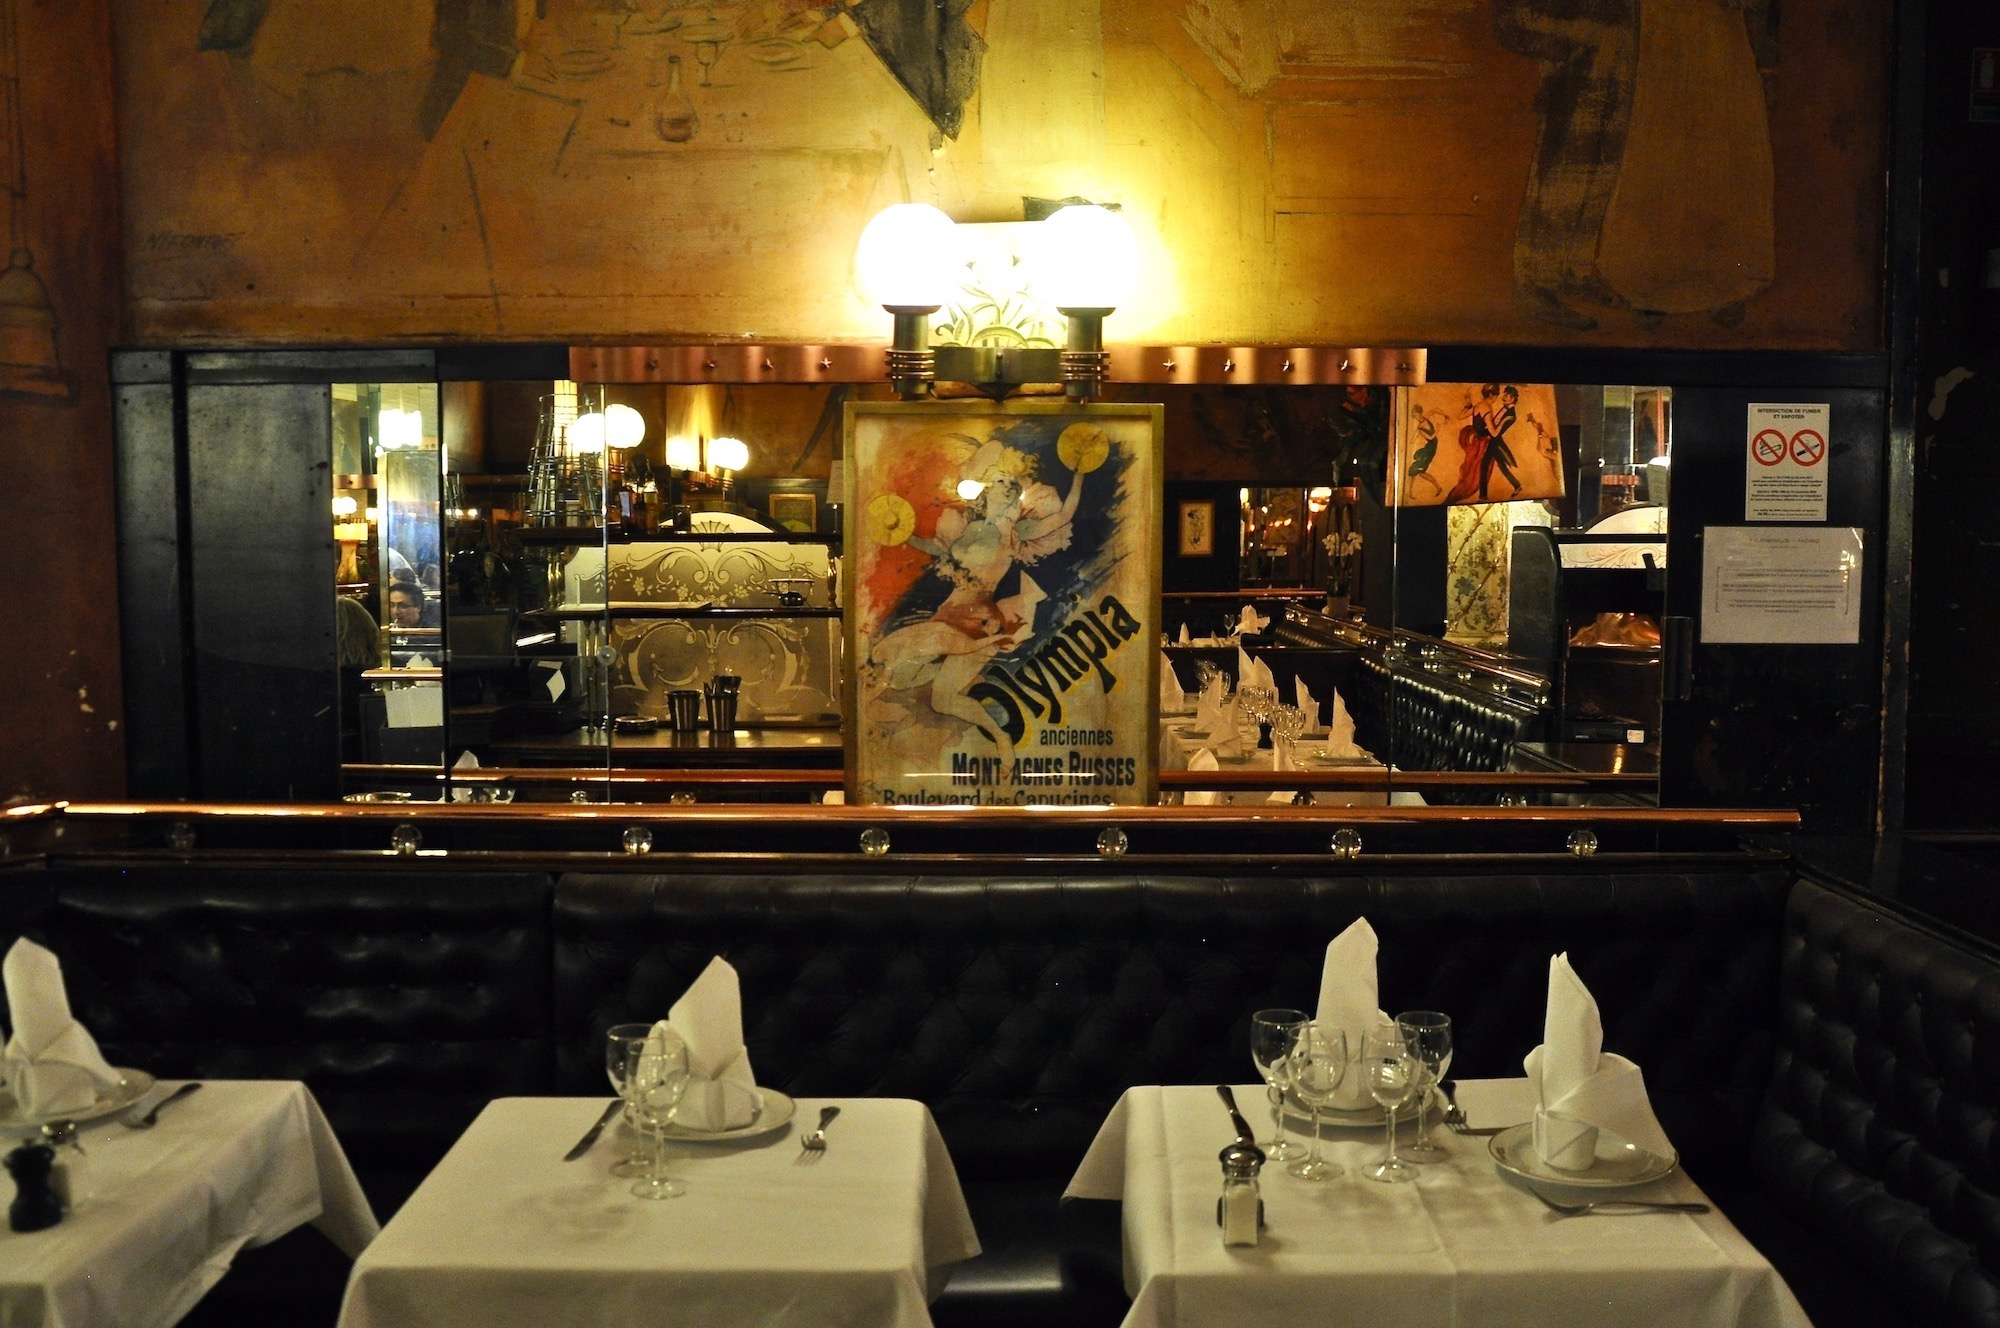 An authentic French brasserie in Paris, Terminus Nord has white clothed tables and art hanging on the walls.